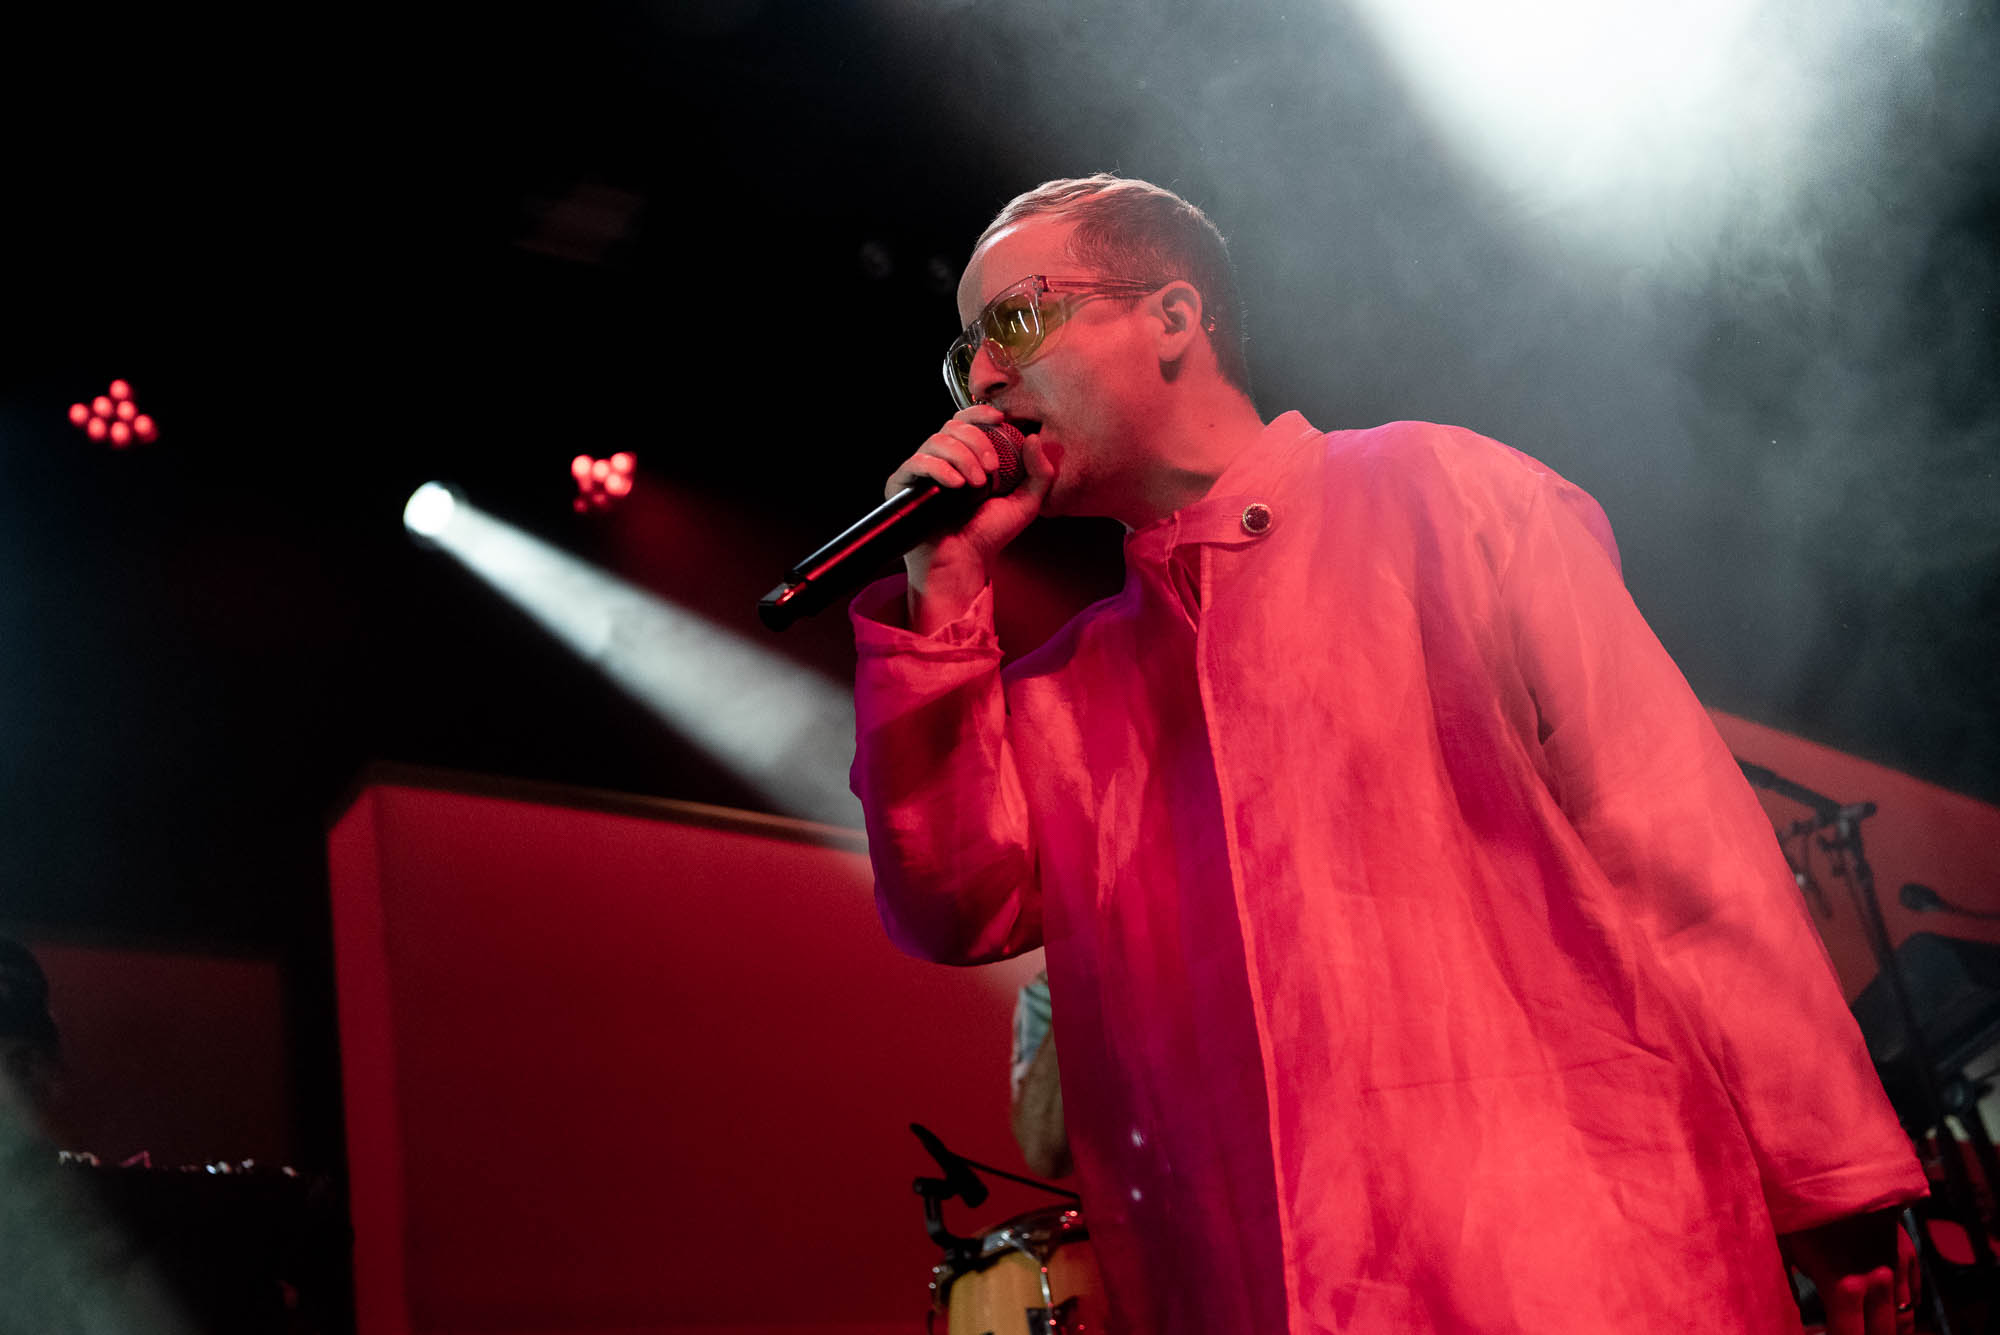 Alexis Taylor of Hot Chip during their set at Brooklyn Steel on Tuesday, September 3, 2019